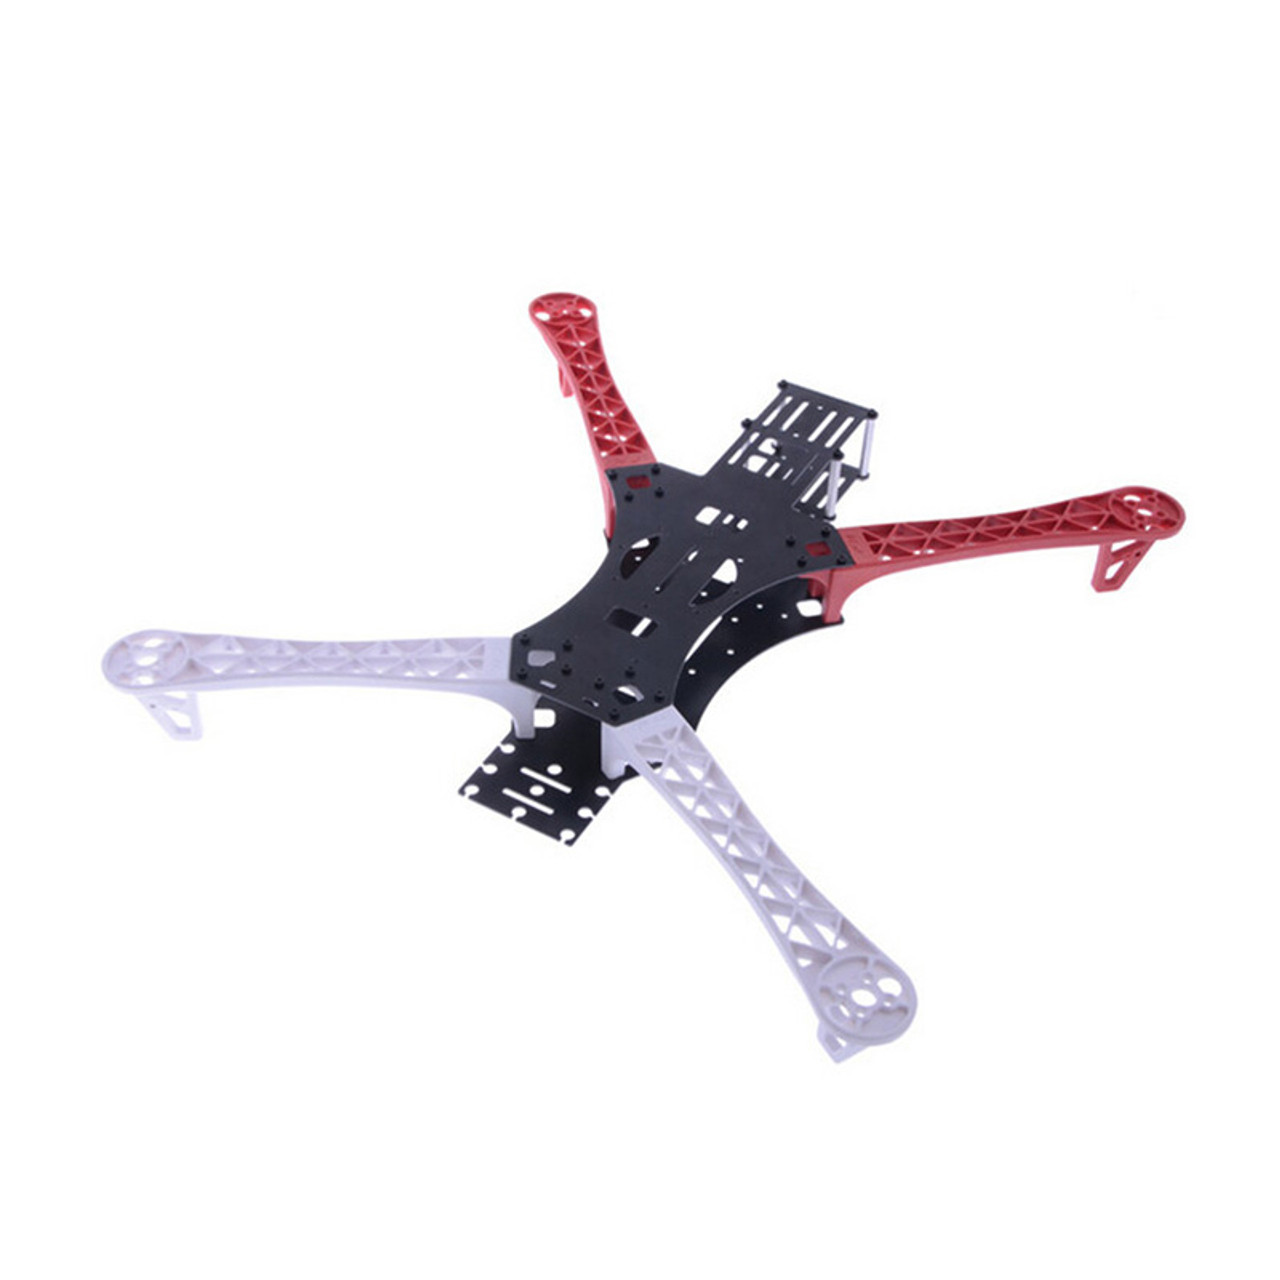 REPTILE 500 Alien Multi-copter 500mm Wheelbase Quadcopter Frame 450 ...